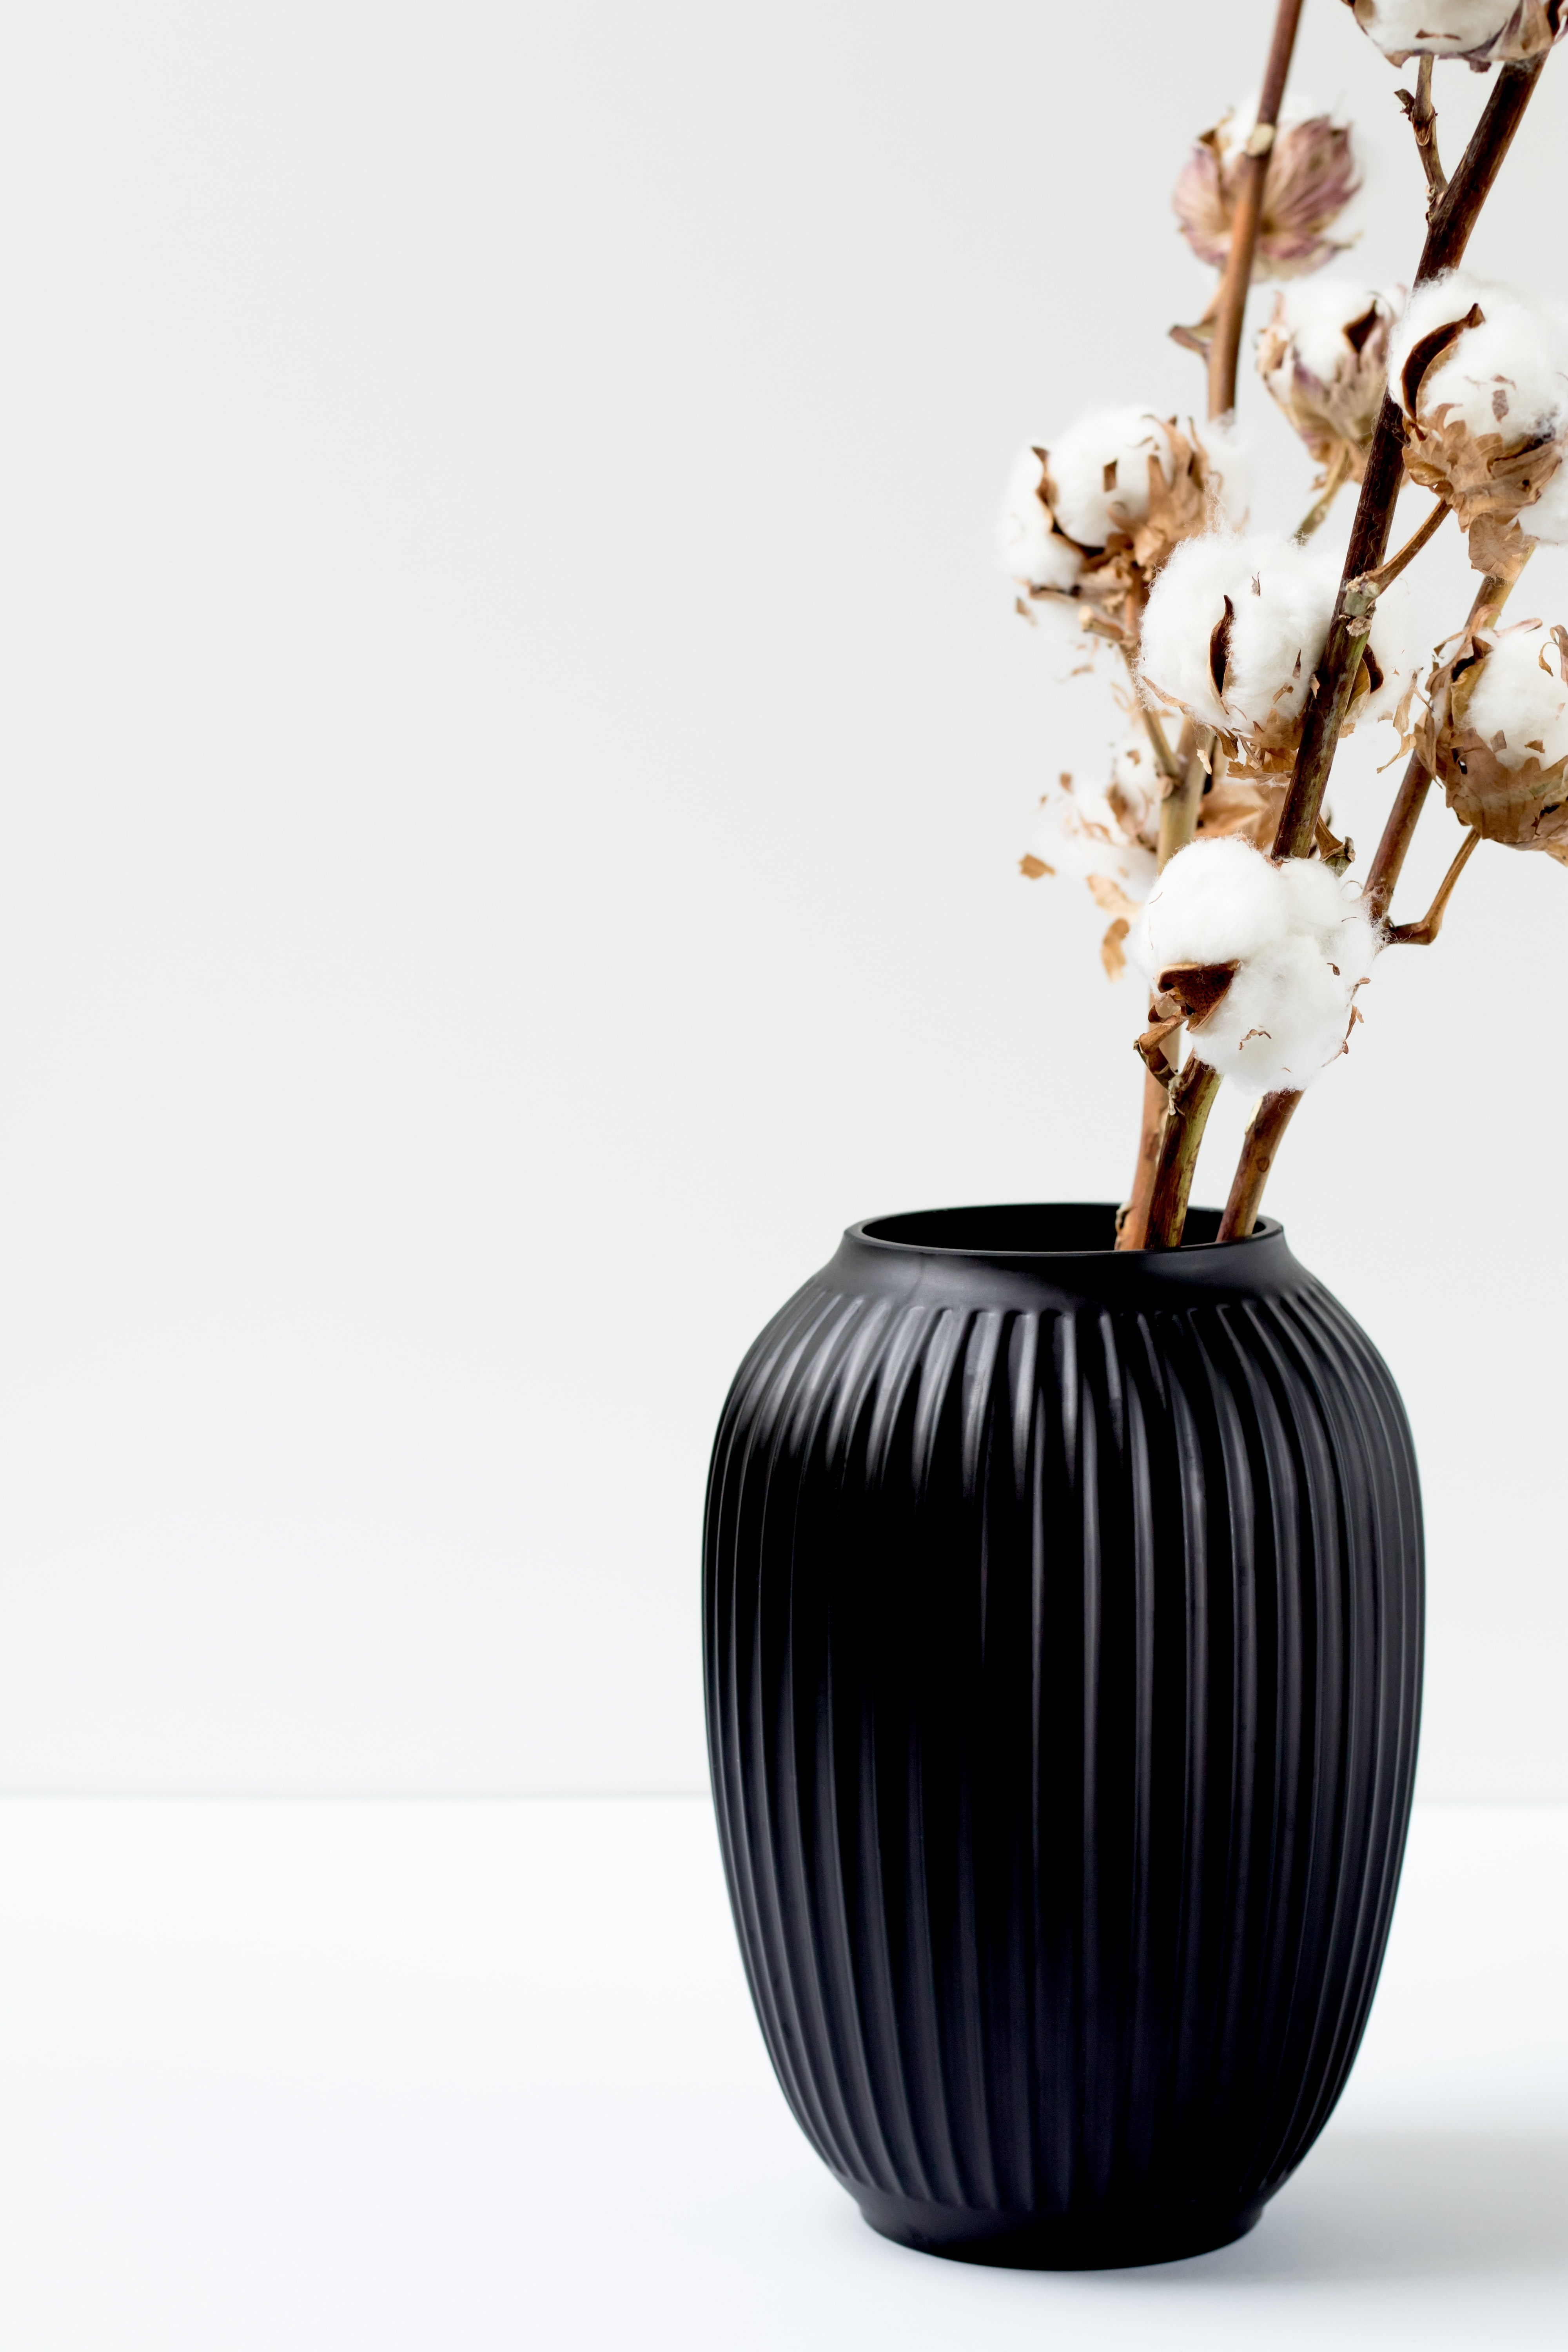 cotton flower in black vase